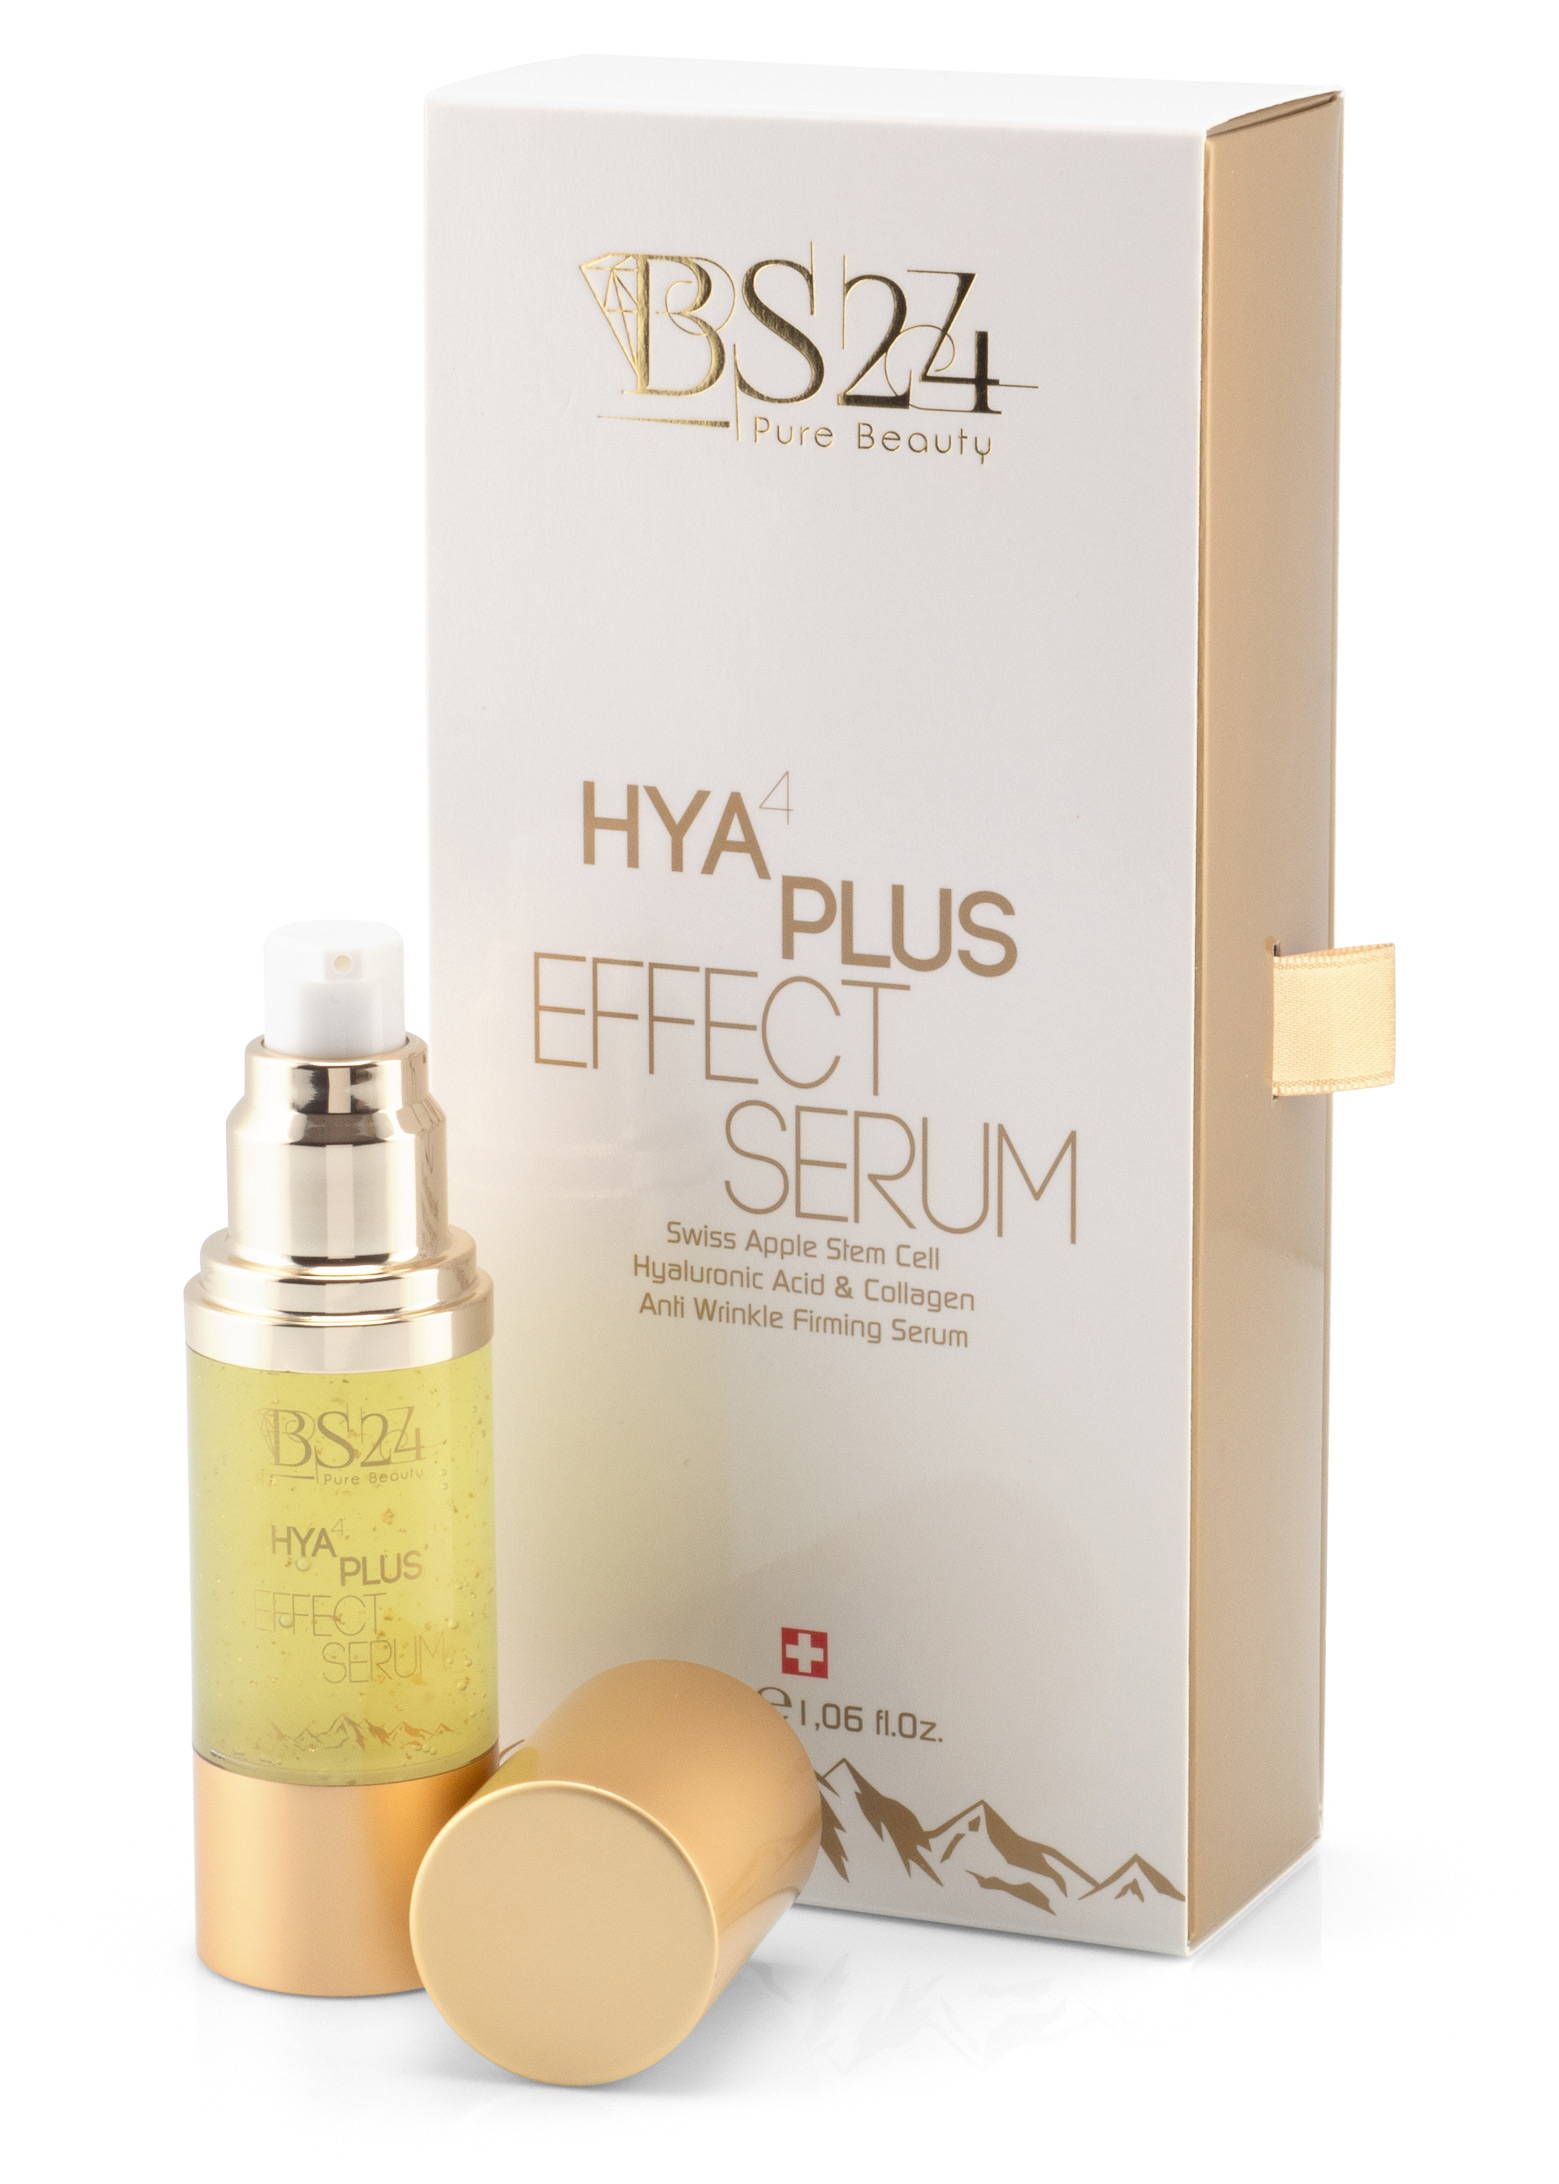 Hya4Plus Effect Serum